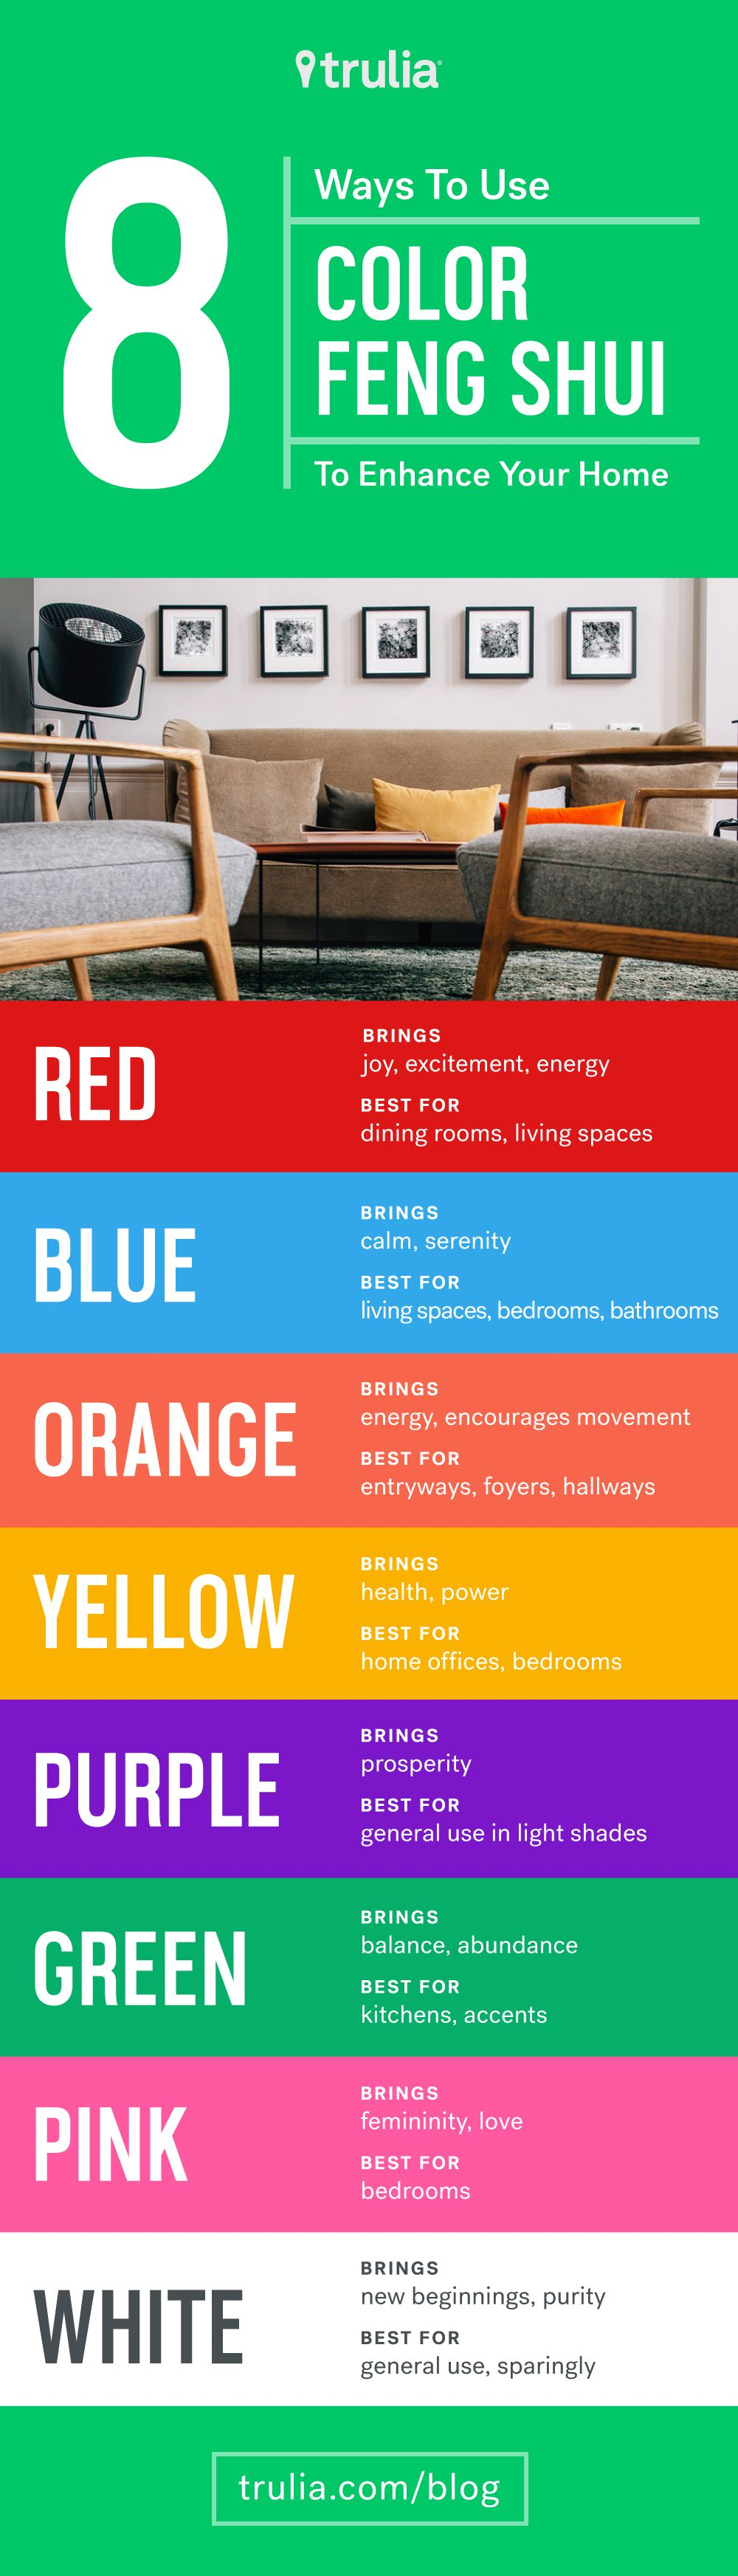 8 Reasons To Use Color Feng Shui To Enhance Your Home Life At